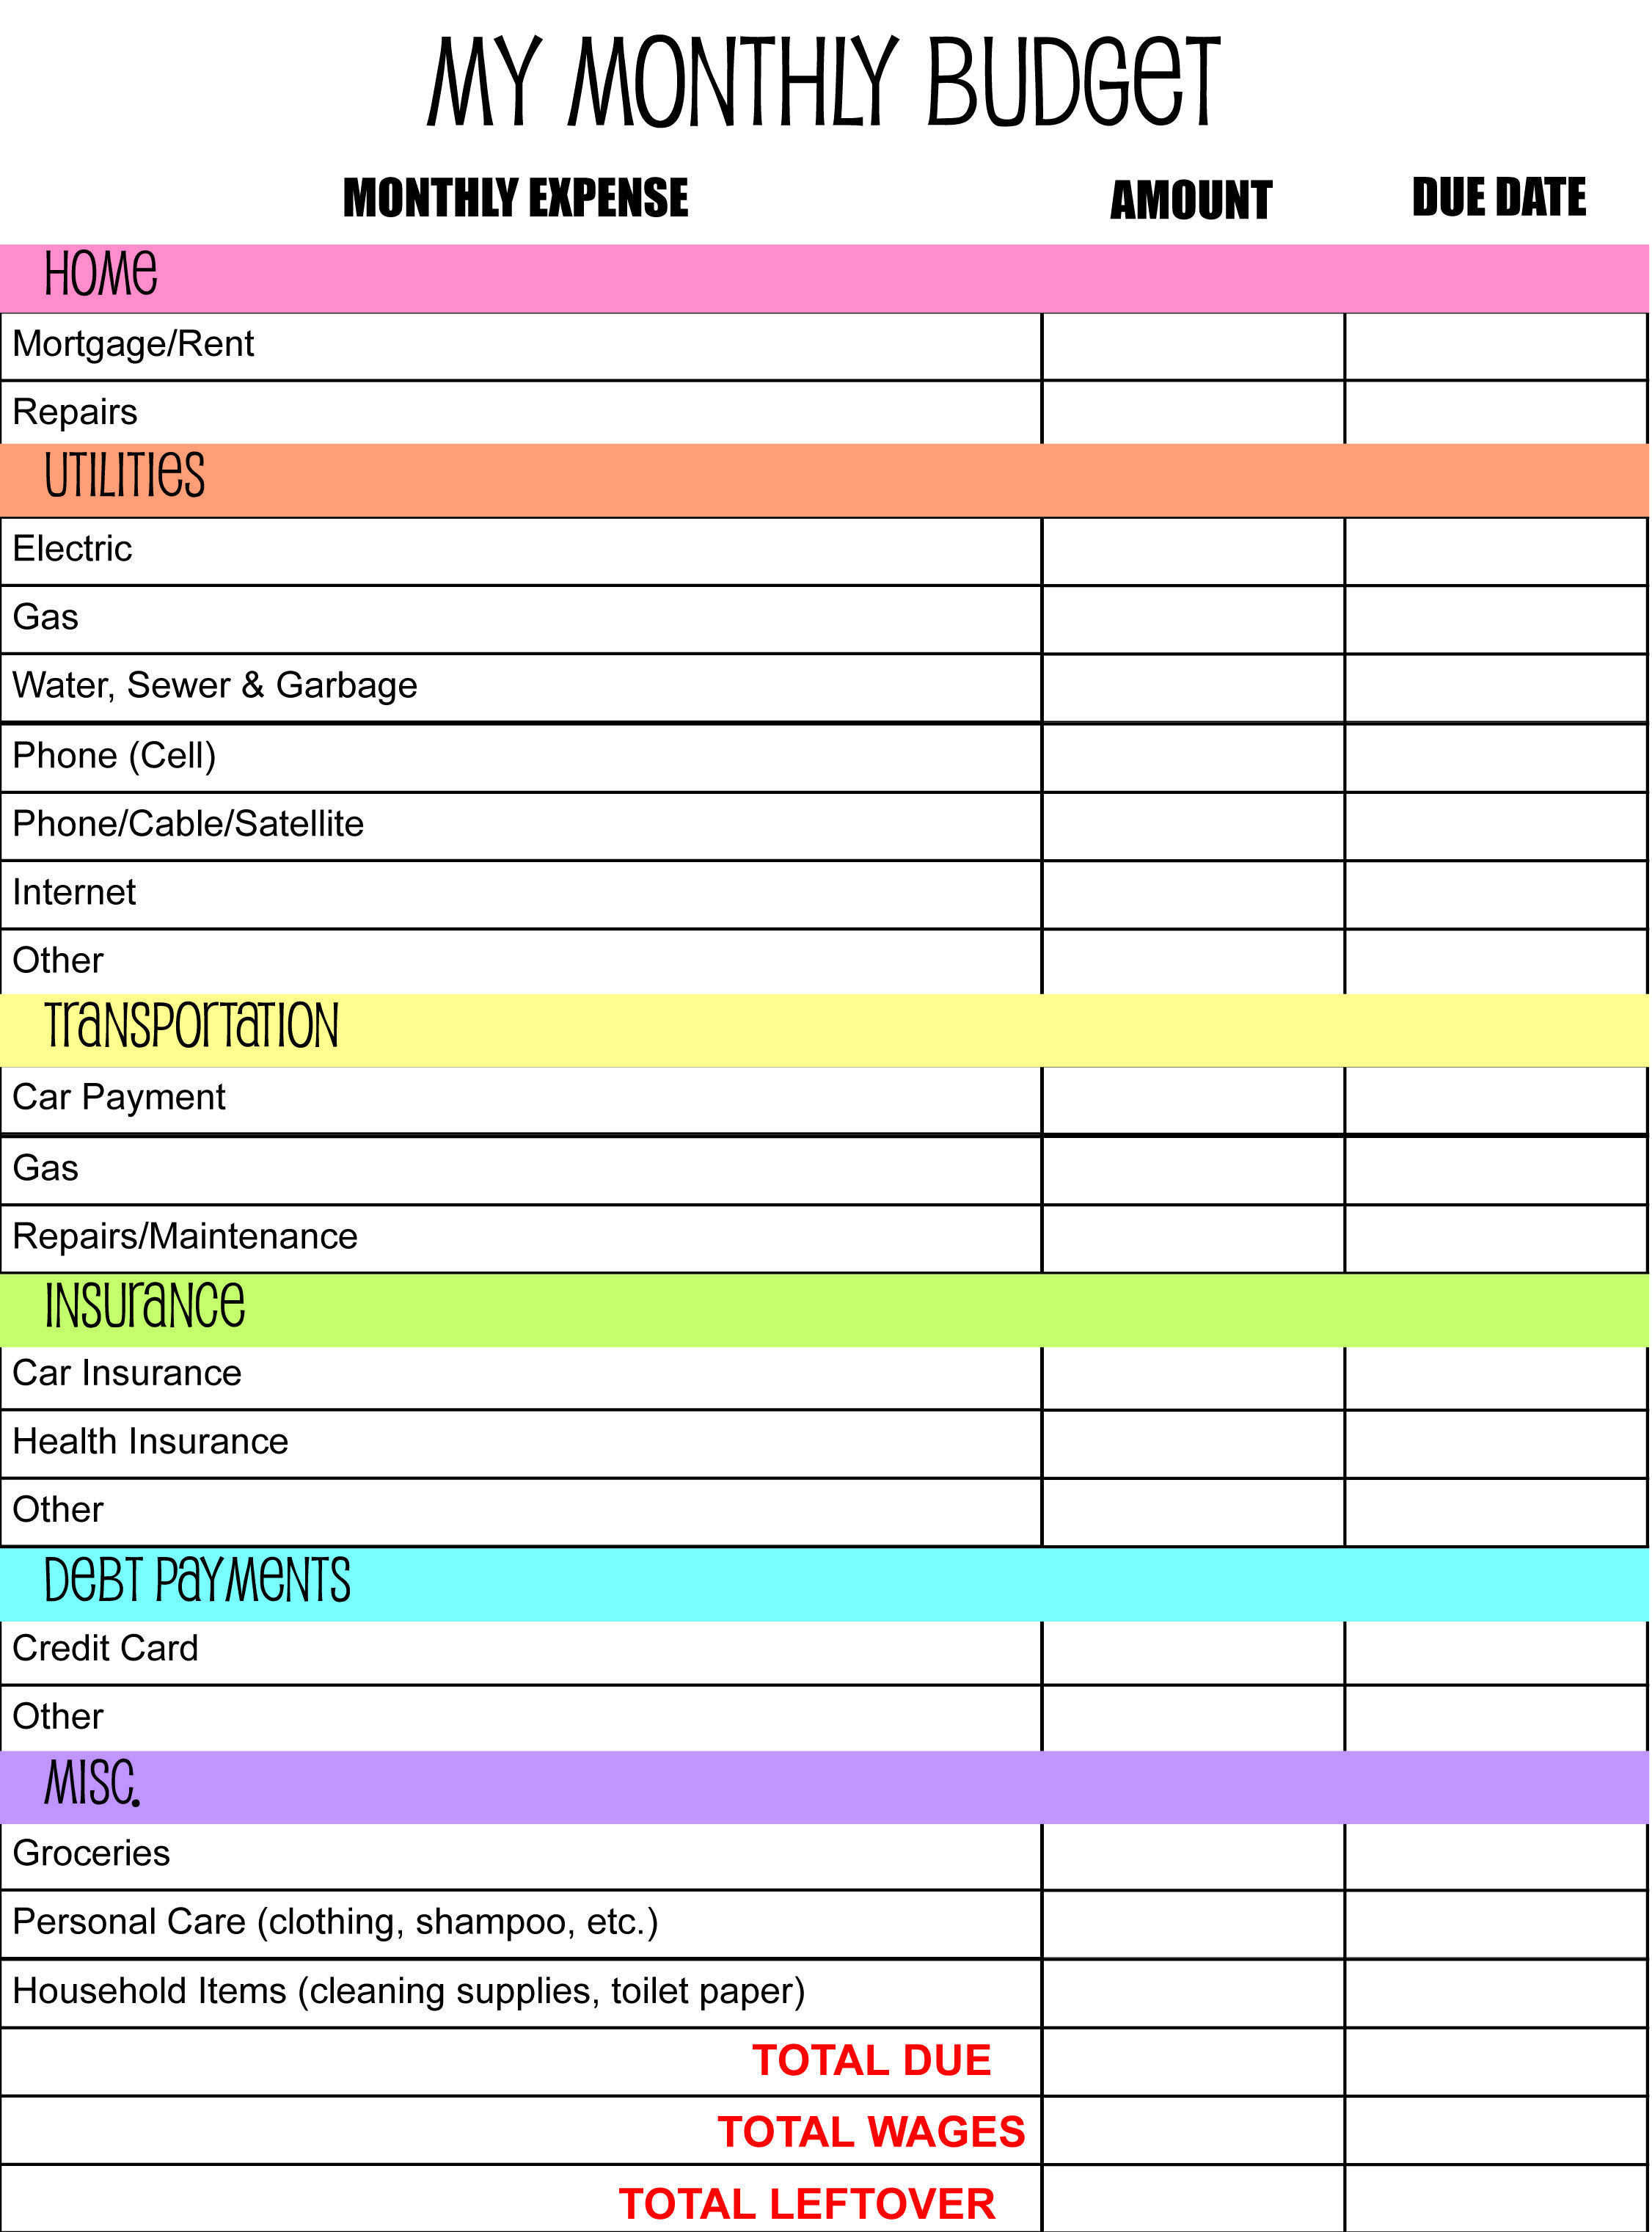 Worksheets Budget Planning Worksheets pin by riki triana on all my own pinterest monthly budget planner i made anderson publications